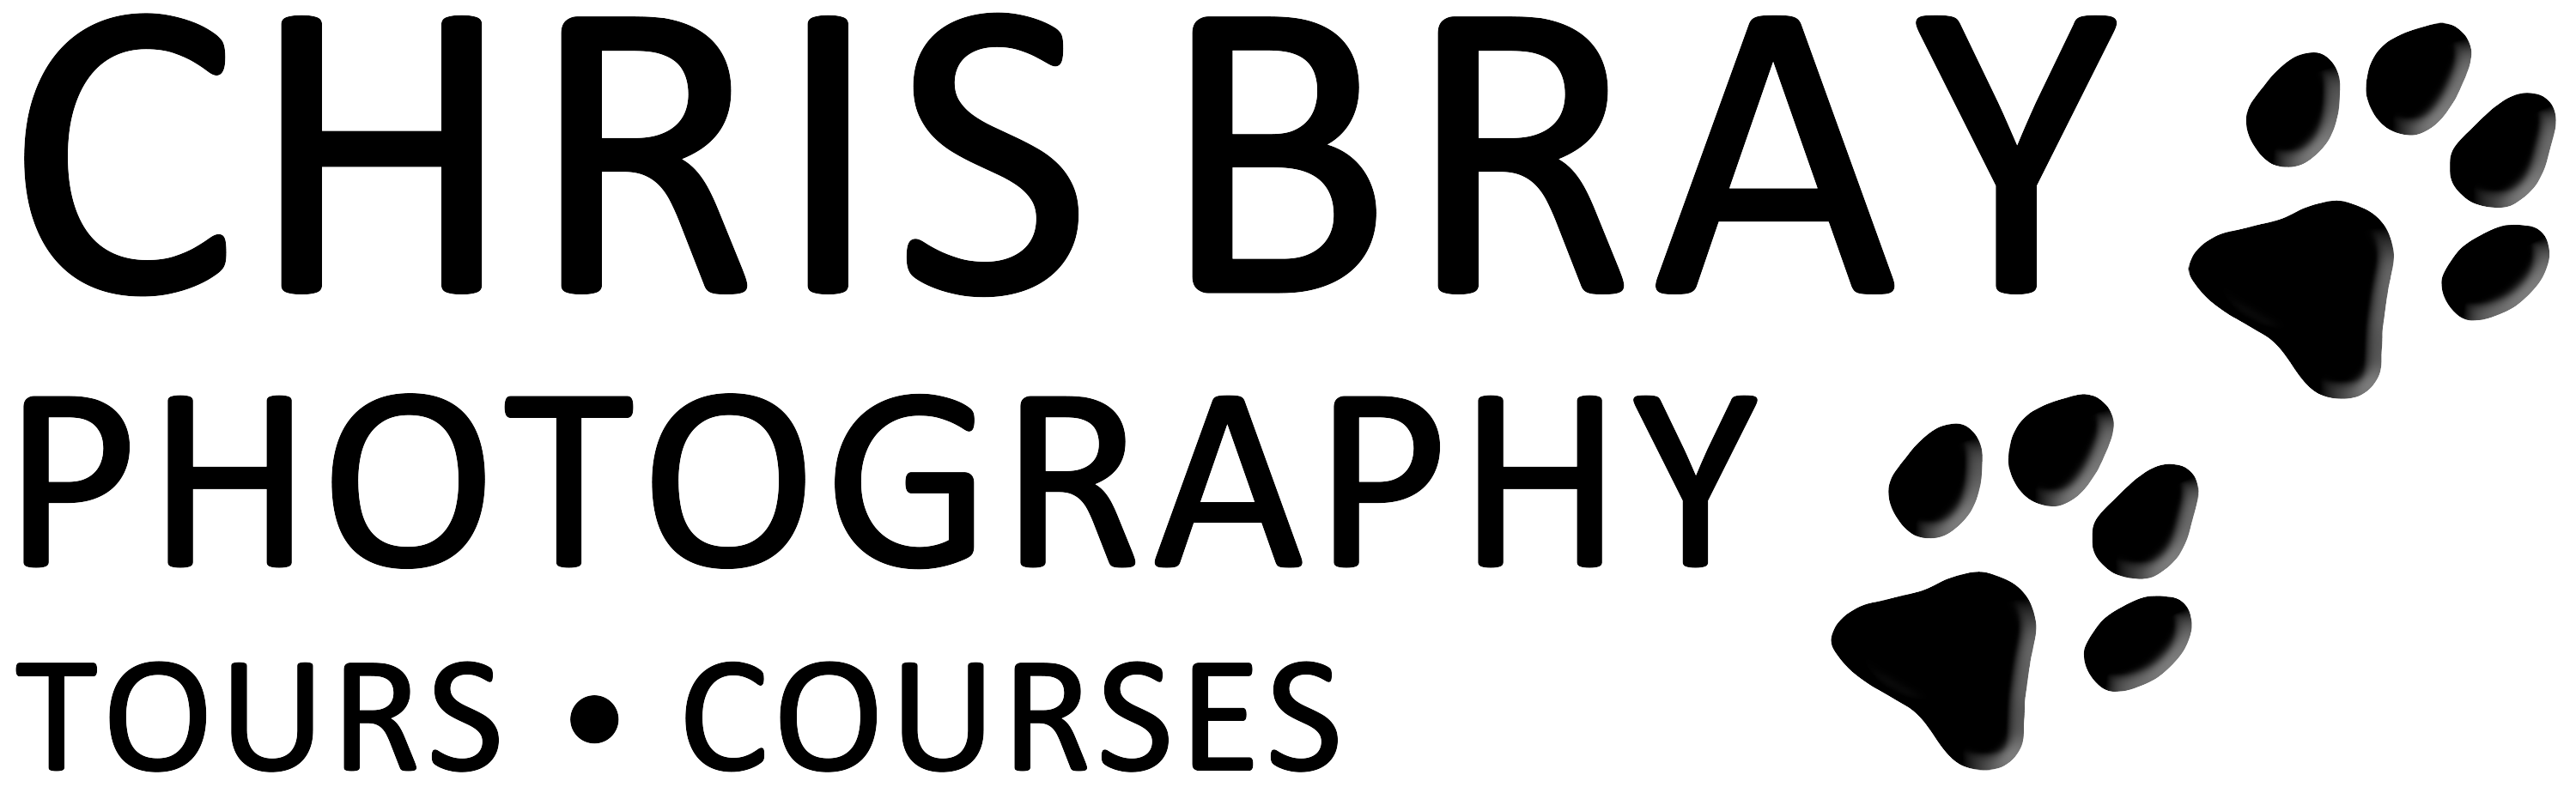 Chris Bray Photography logo